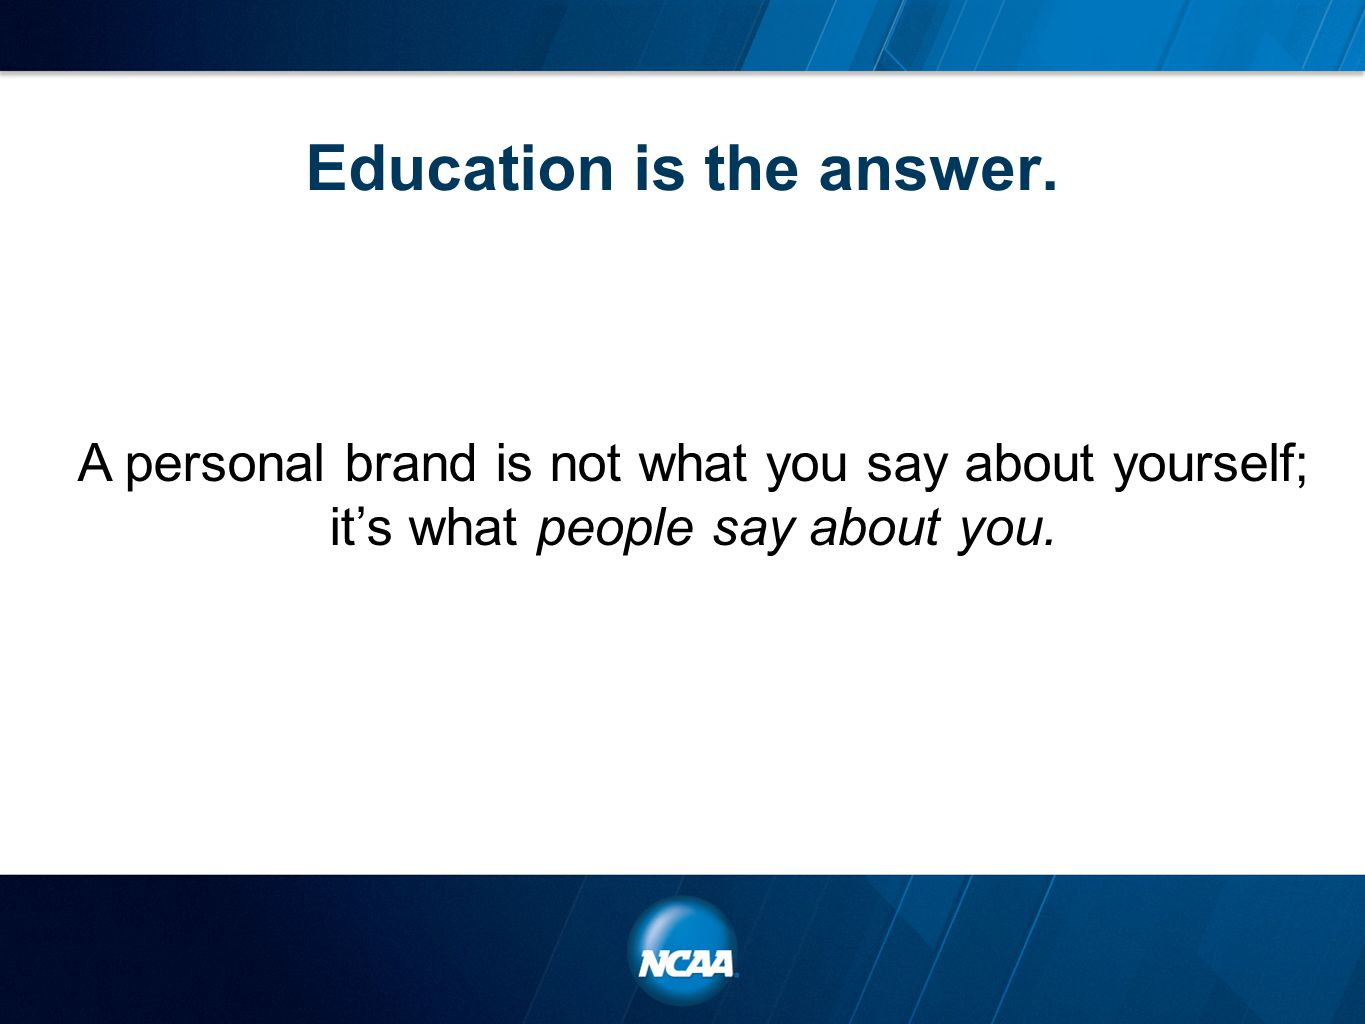 Education is the answer. A personal brand is not what you say about yourself; it's what people say about you.